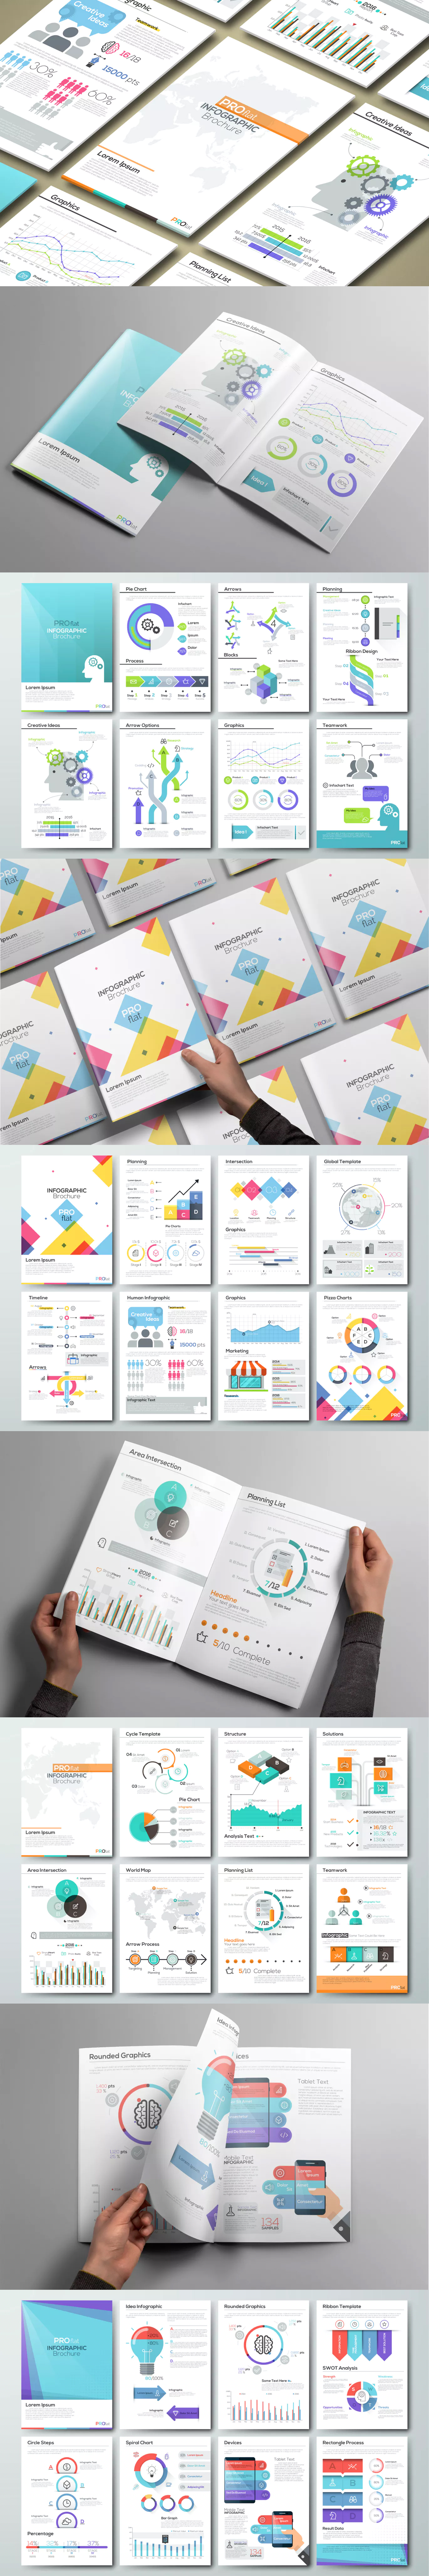 Pro flat infographic brochures template ai eps psd wrk pro flat infographic brochures by andrewkras on envato elements gumiabroncs Image collections